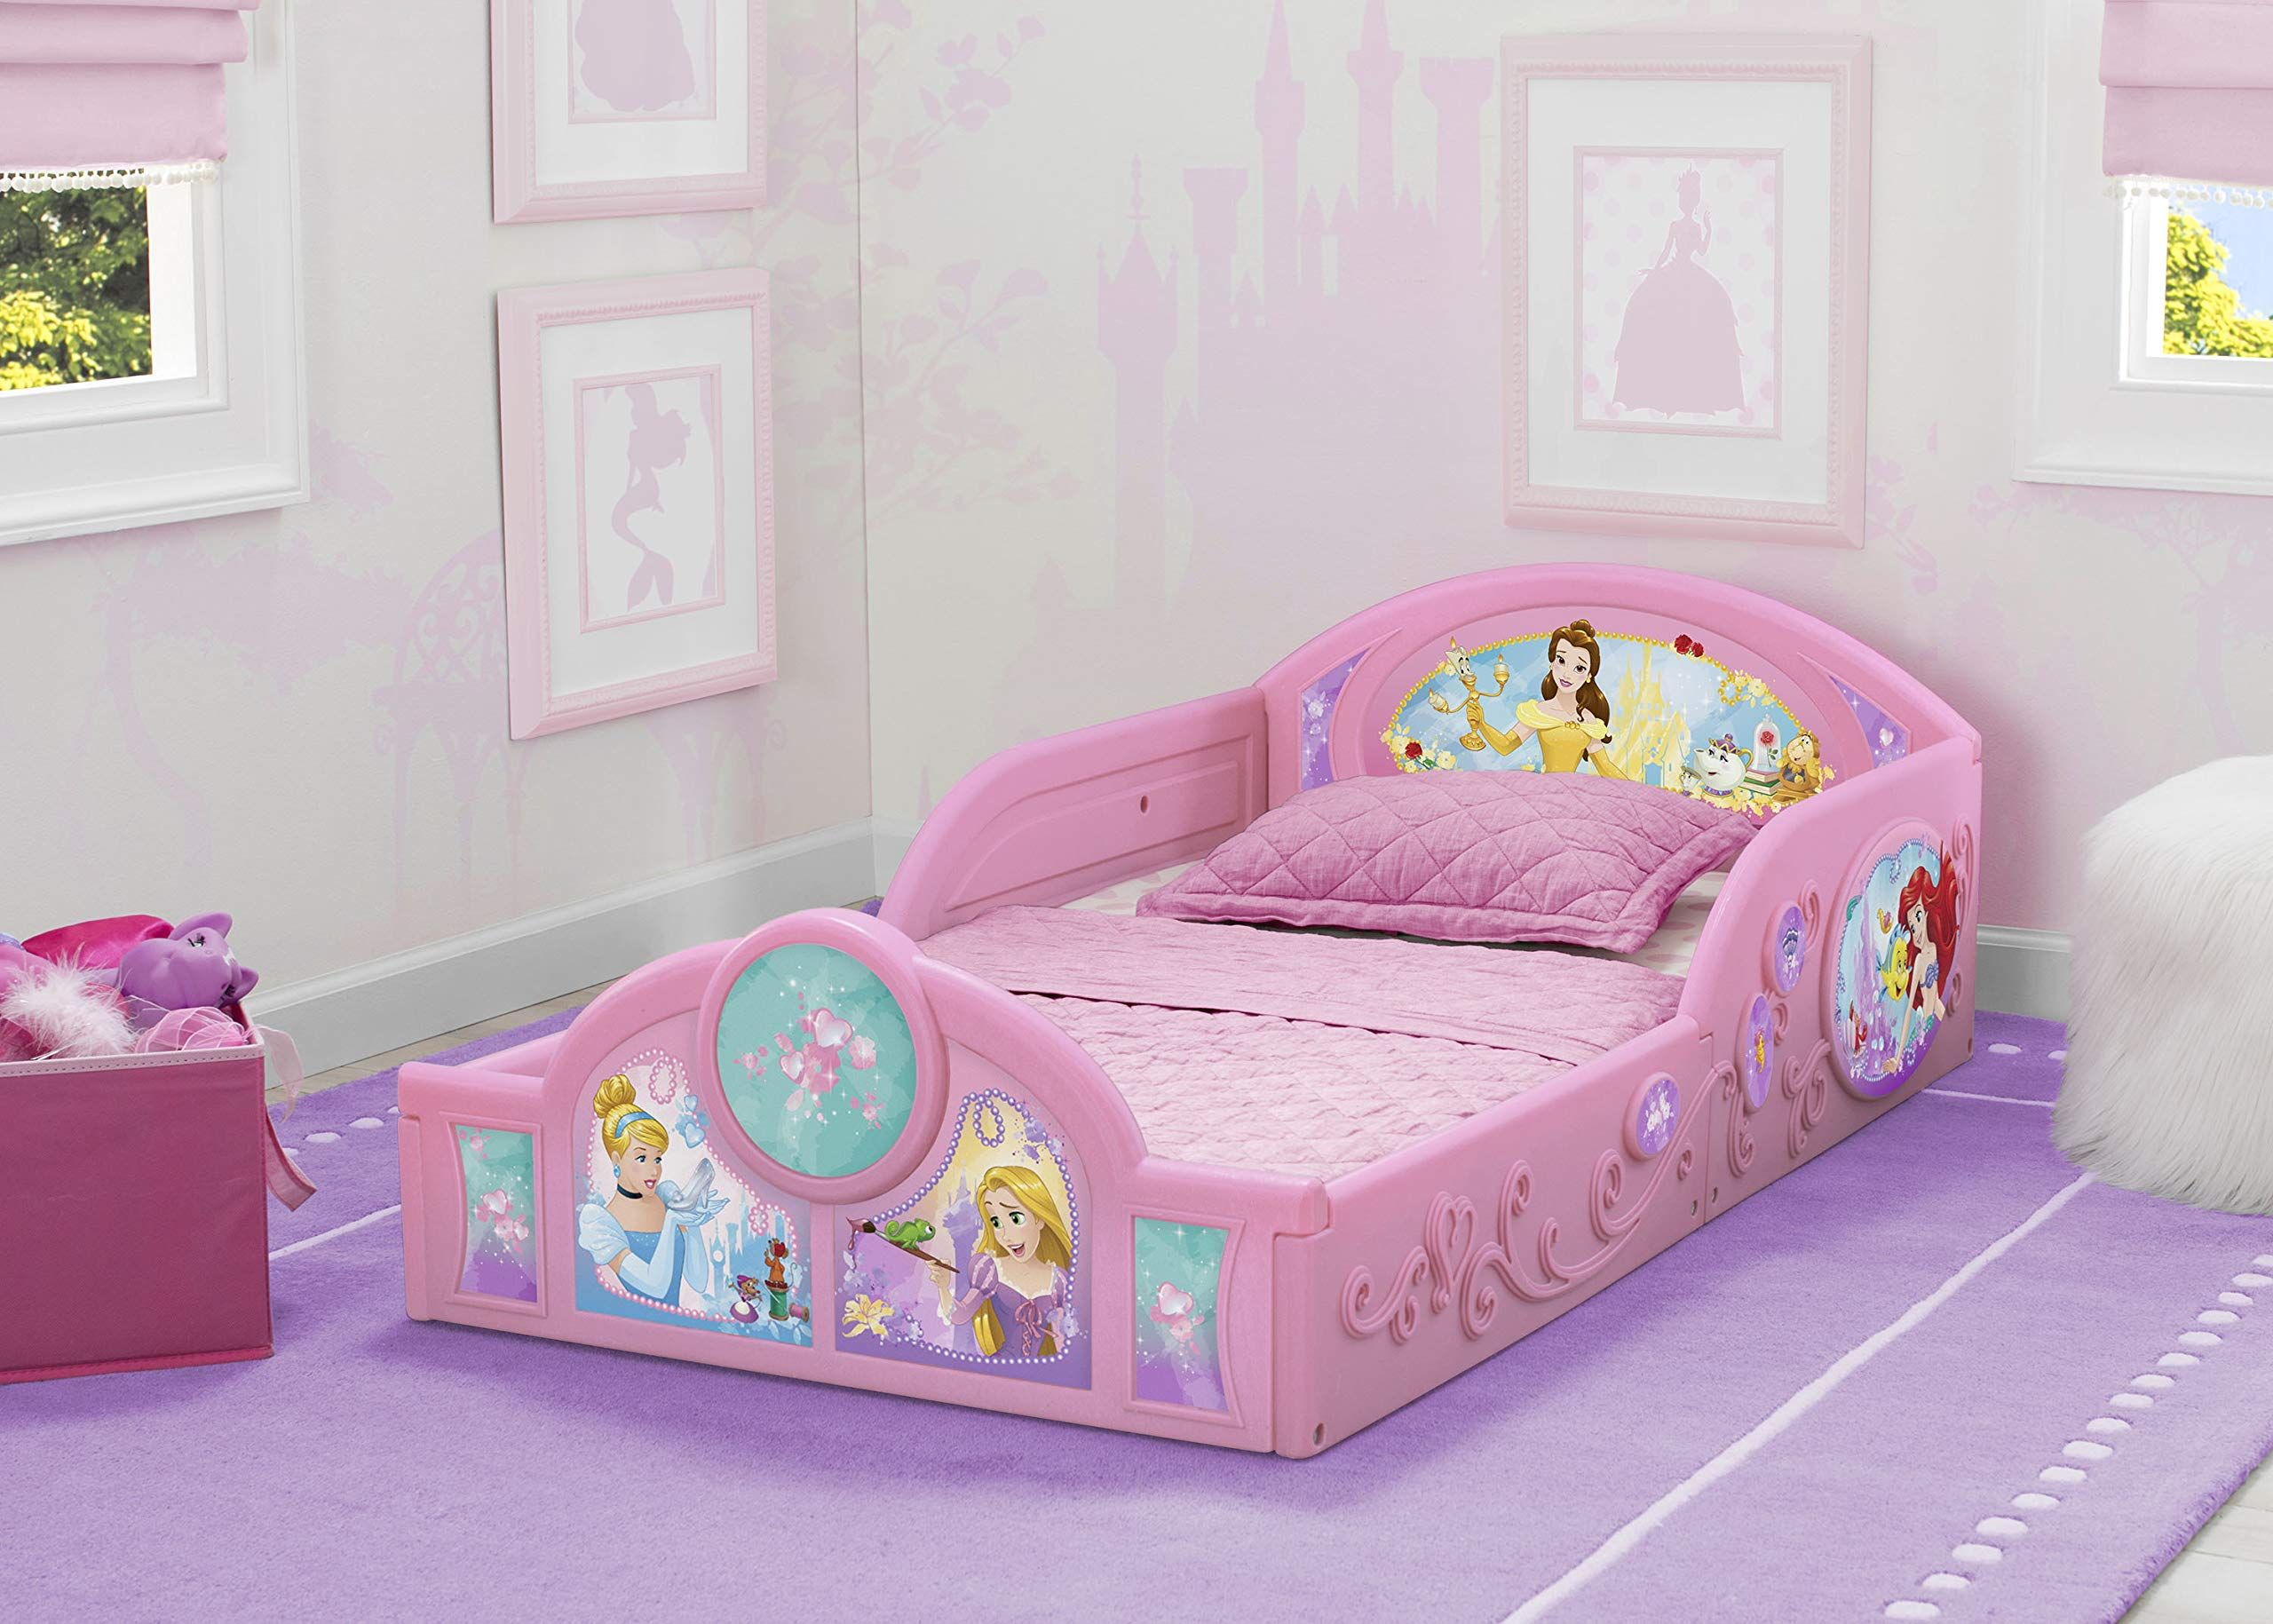 Delta Children Princess Sleep And Play Toddler Bed With Attached Guardrails Features Colorful Graphics Of Ci Princess Toddler Bed Toddler Bed Girl Toddler Bed